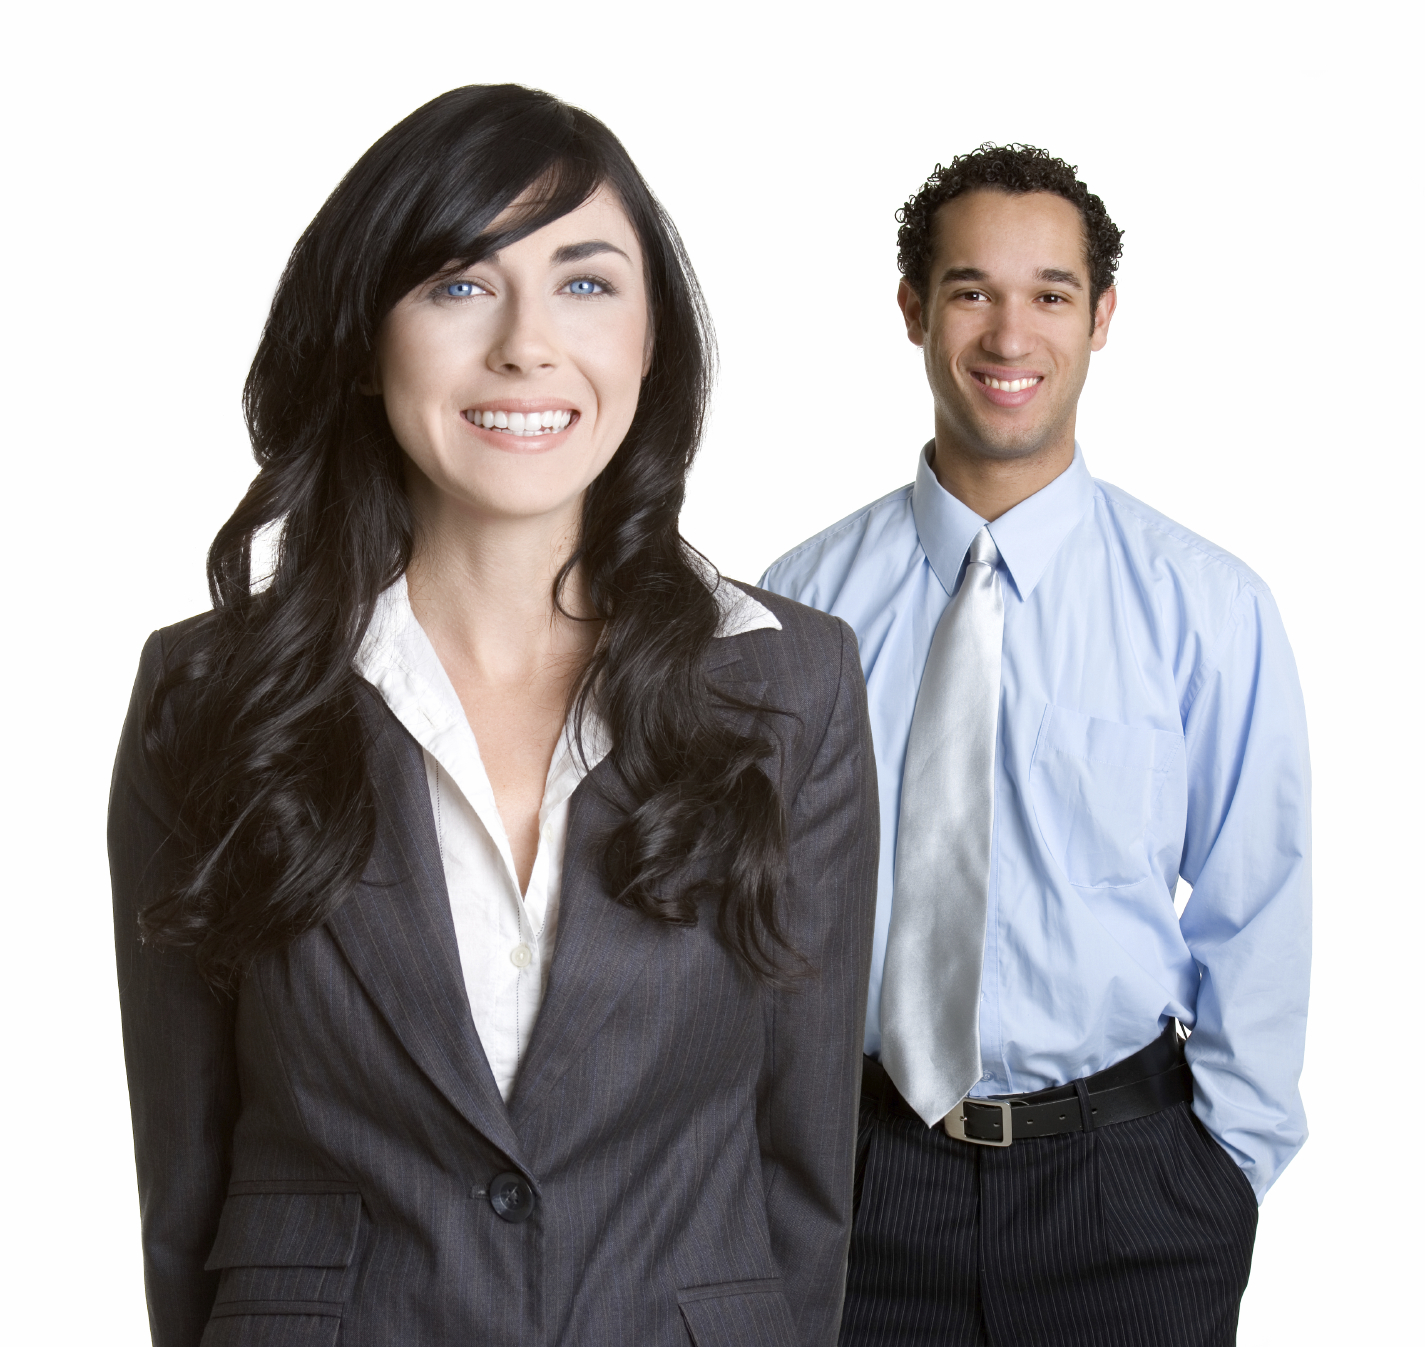 Selling Managed Services in 3 Appointments or Less